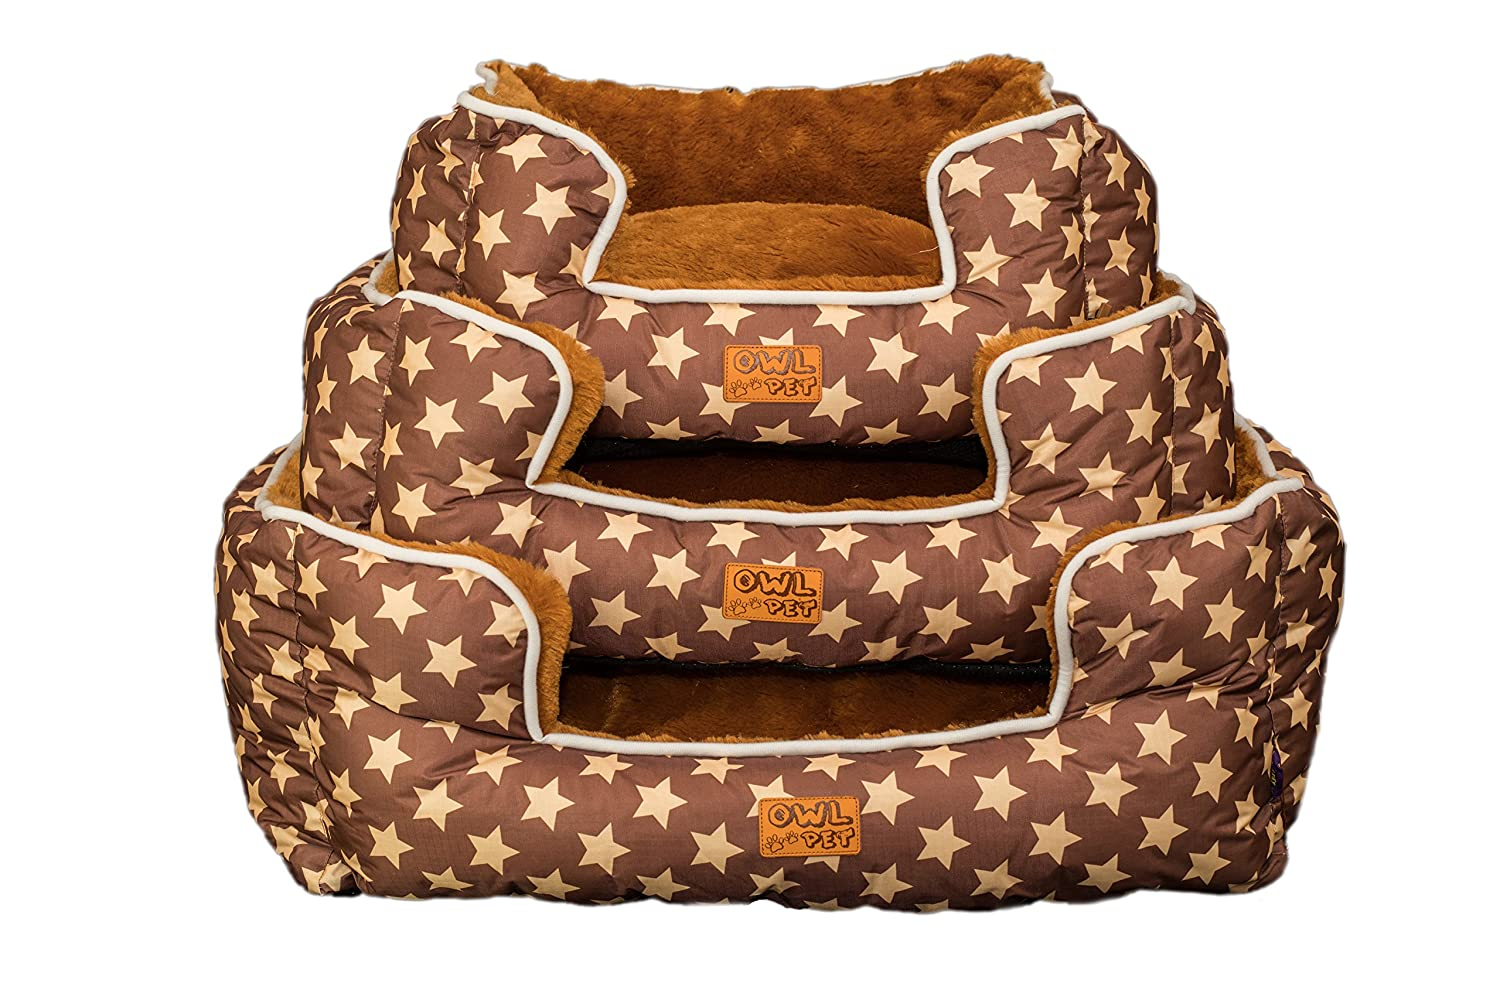 L Owl pet soft cute rectangular shape cats dogs pet bed with removable washable mattress, Premium Oxford fiber, small to large, 14 unique patterns. (brown + yellow star, L)